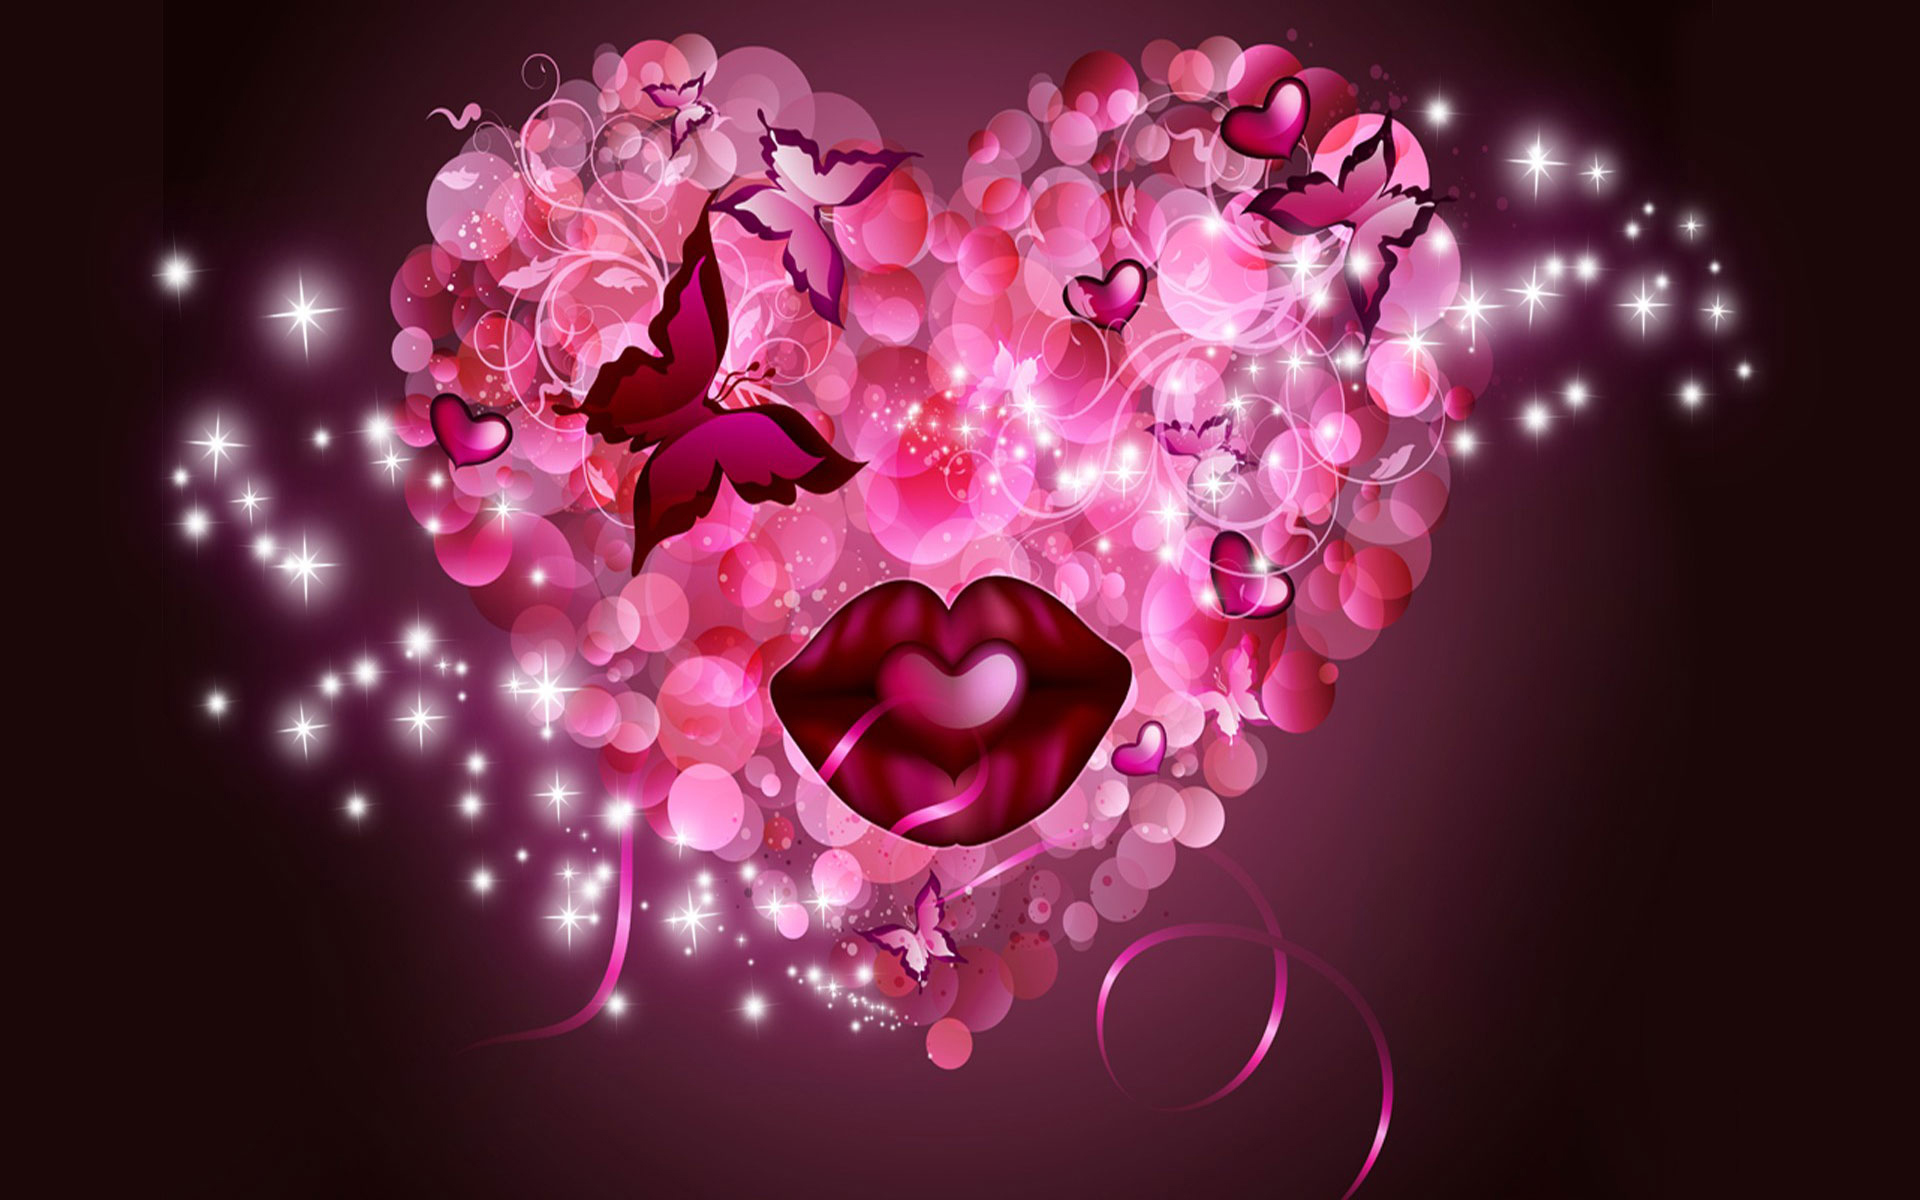 Love Wallpaper collection Zip : cute Love Heart wallpaper HD -Free Pink Heart Wallpapers